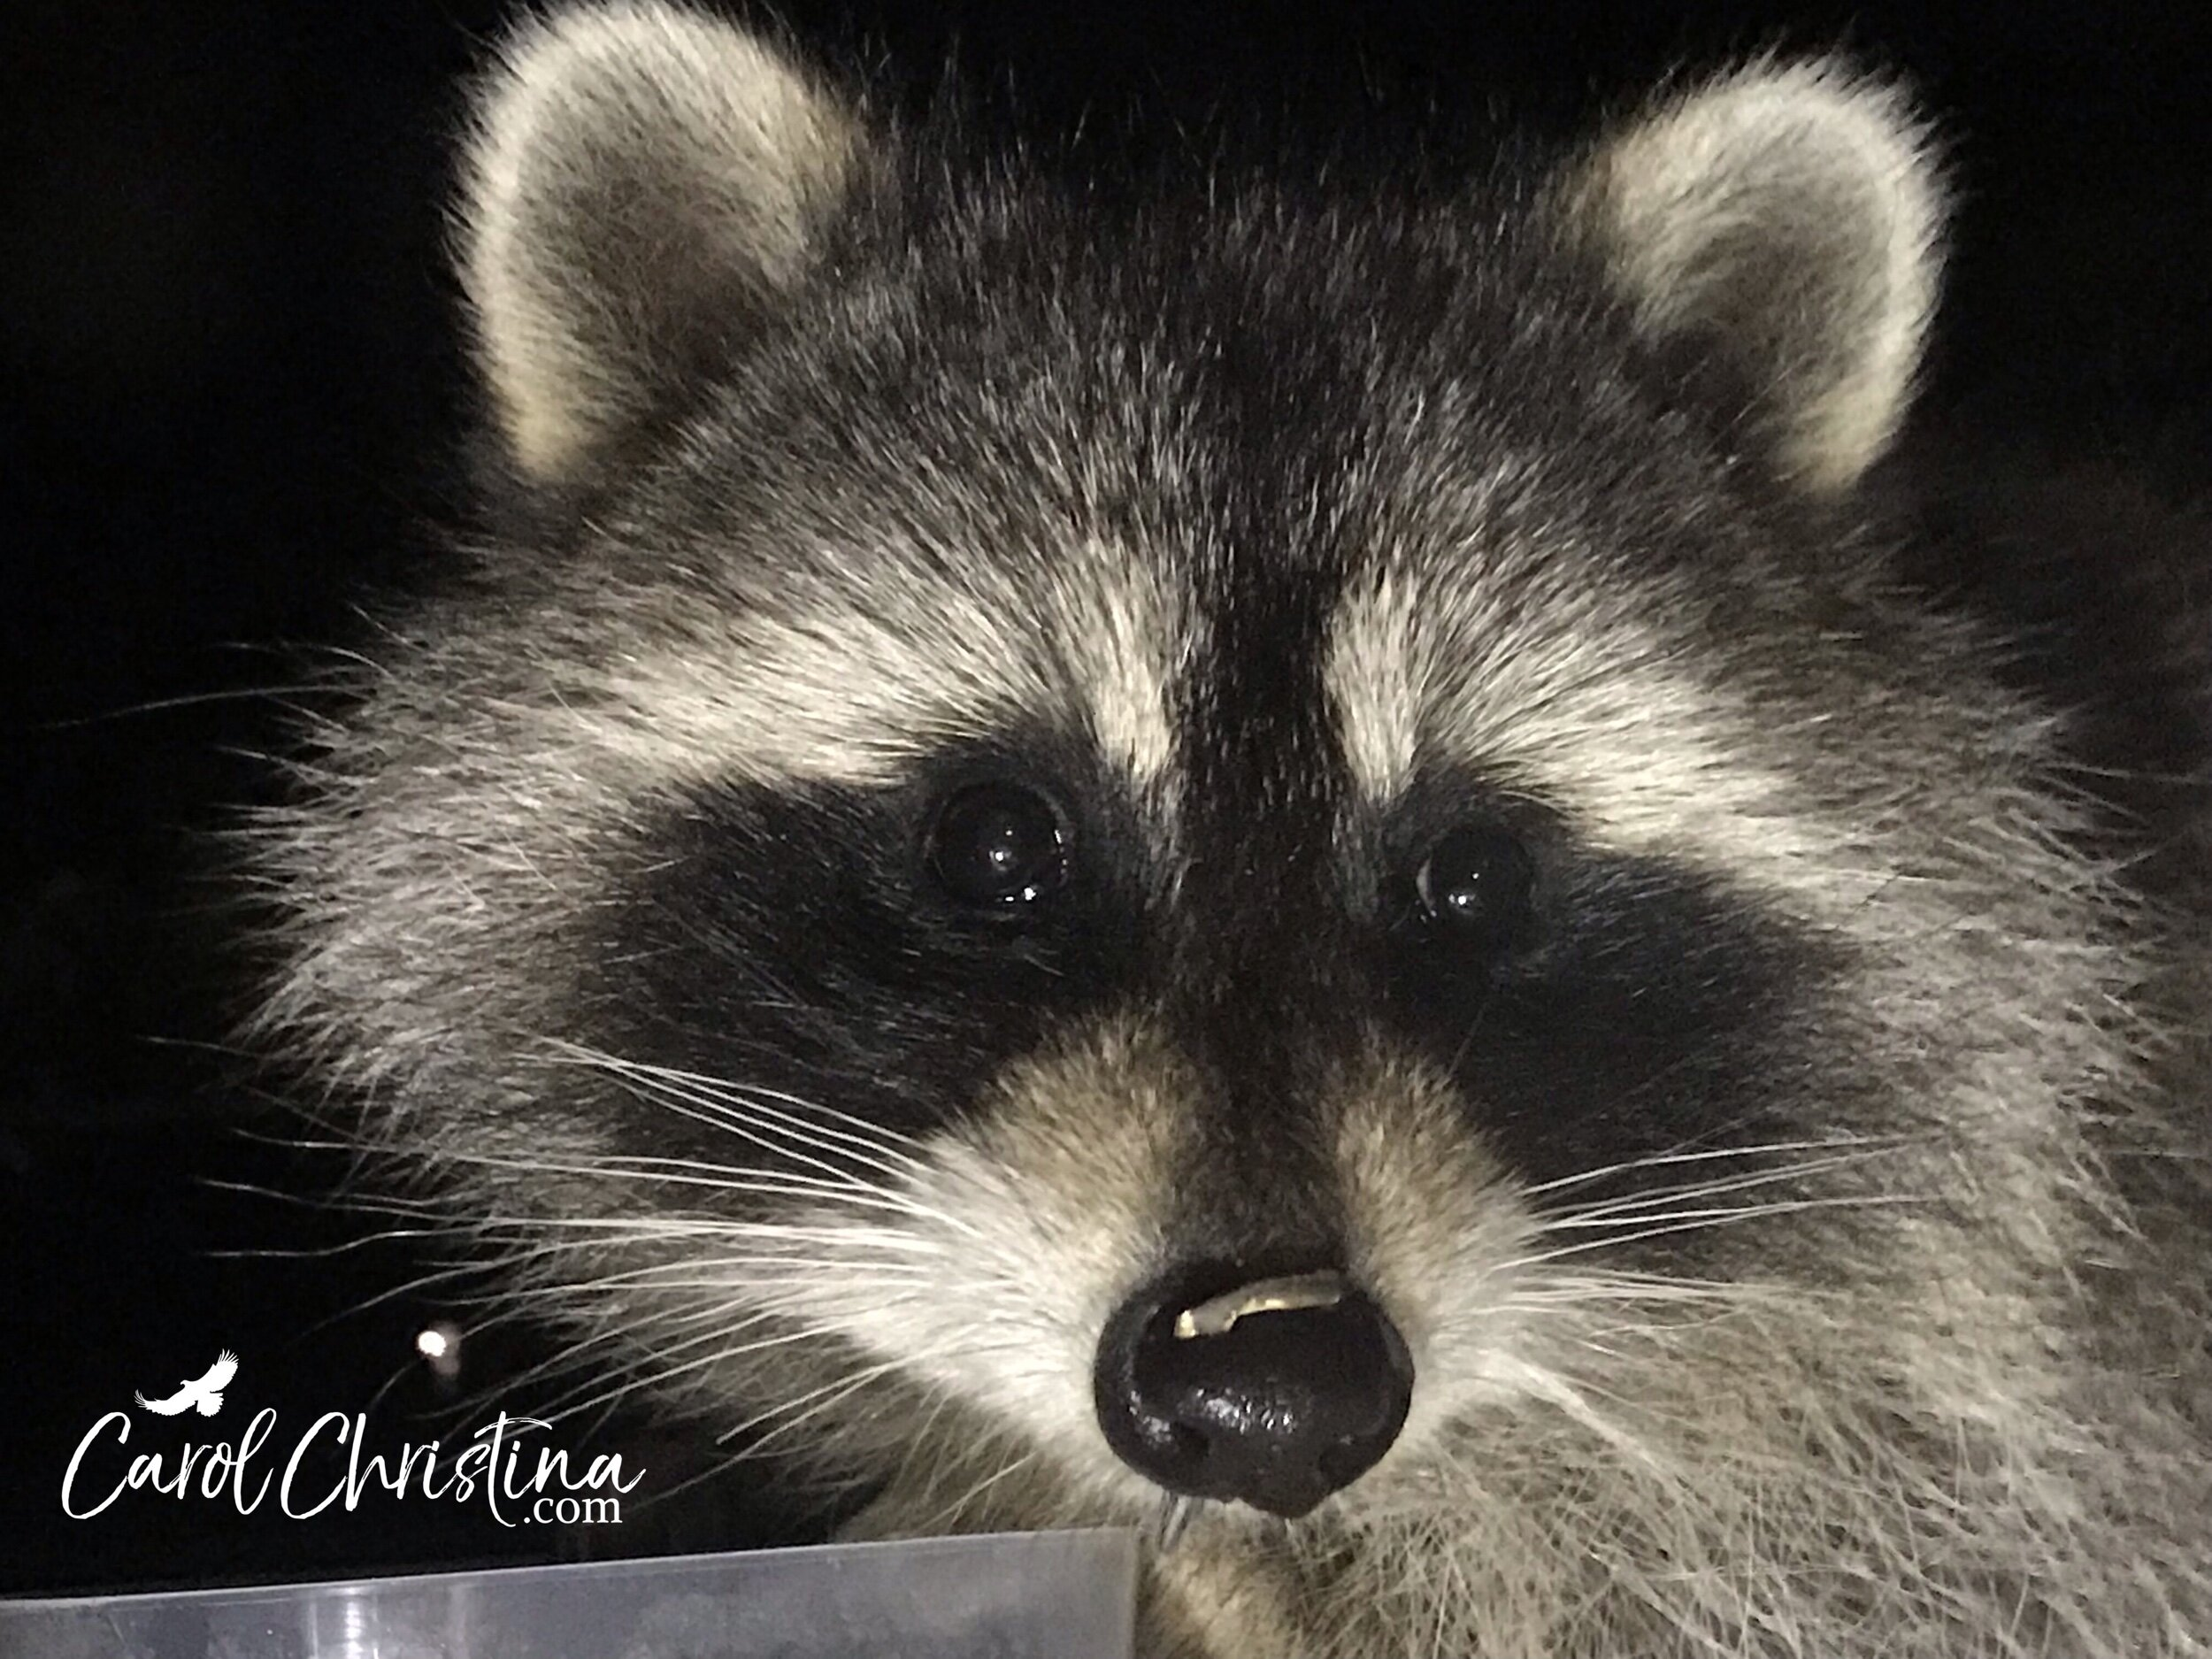 A little raccoon at my window with a sunflower seed shell on his nose.